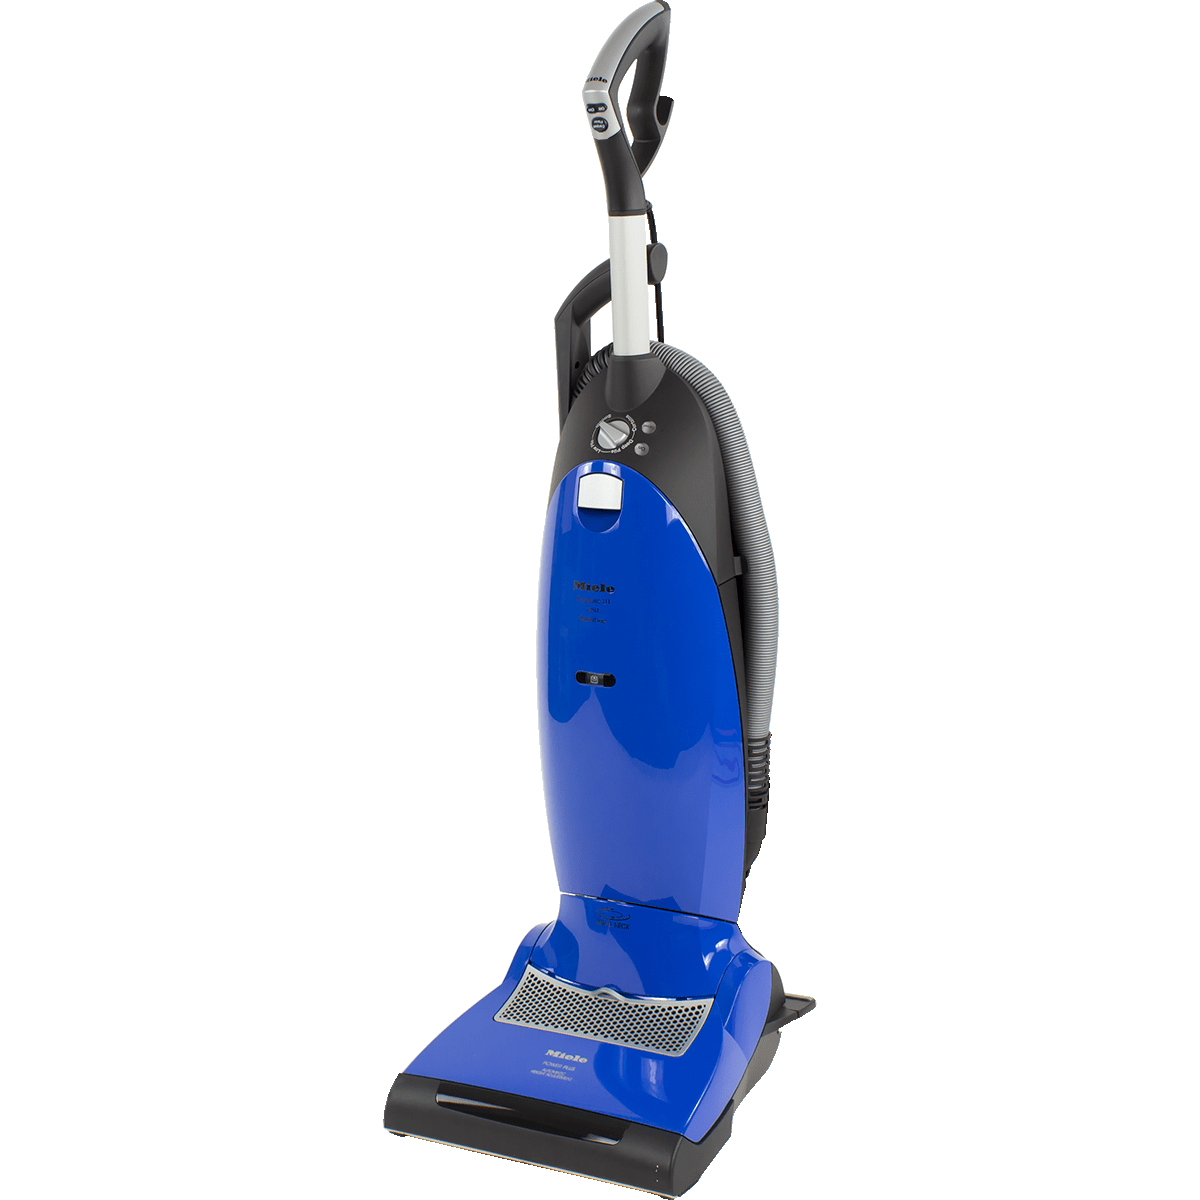 Miele Carpet Cleaner Images Vacuum How To